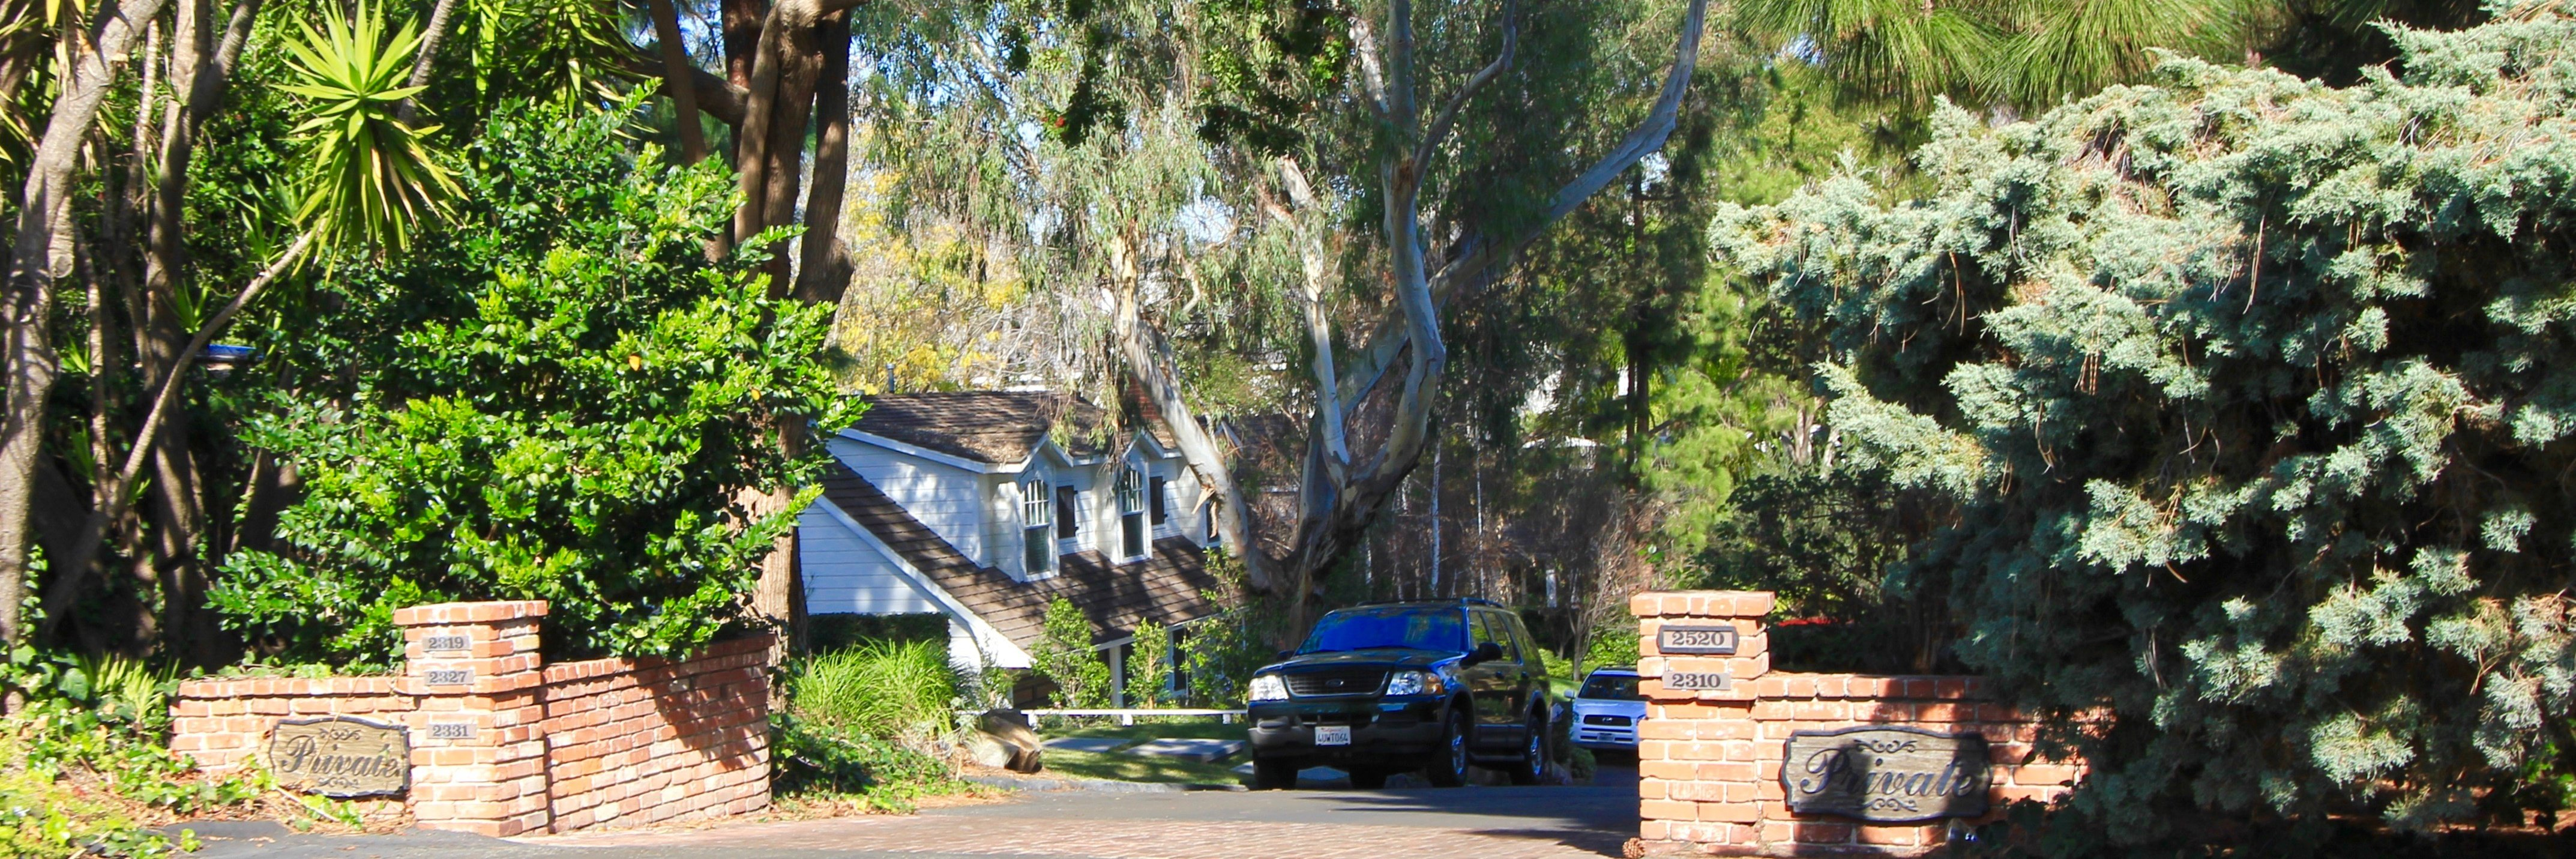 Cherry Lake is a community located within the city of Newport Beach, CA